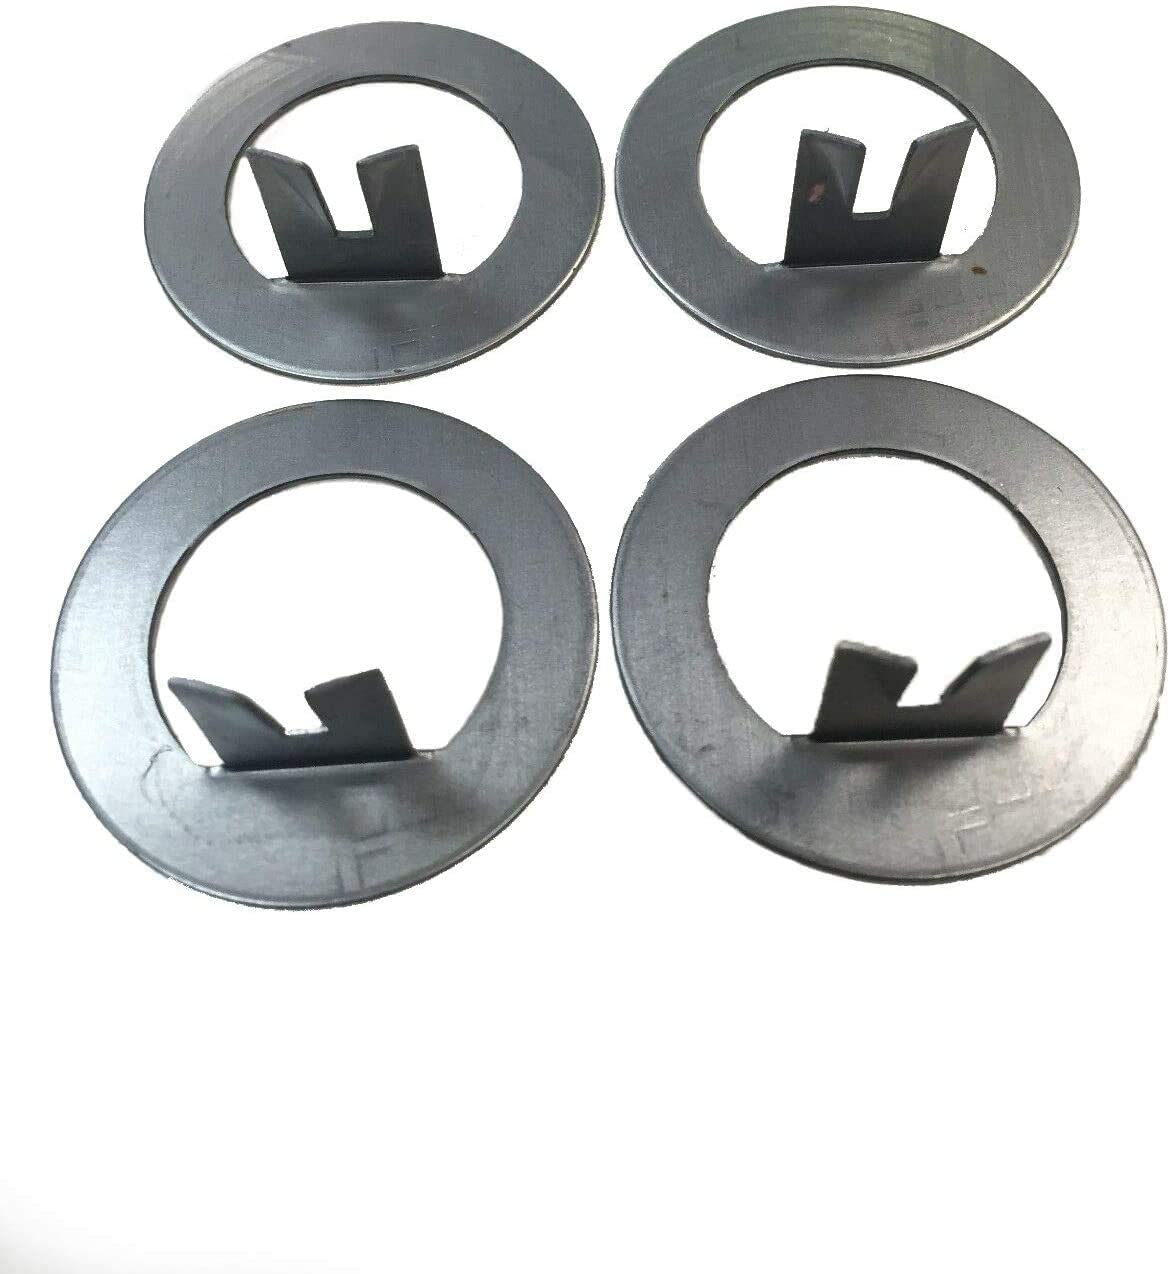 YiYuanG Replacement Trailer Wheel Spindle Tang Anti-loosening Washer 2 pairs Fits 2 to 7K EZ lube Axle